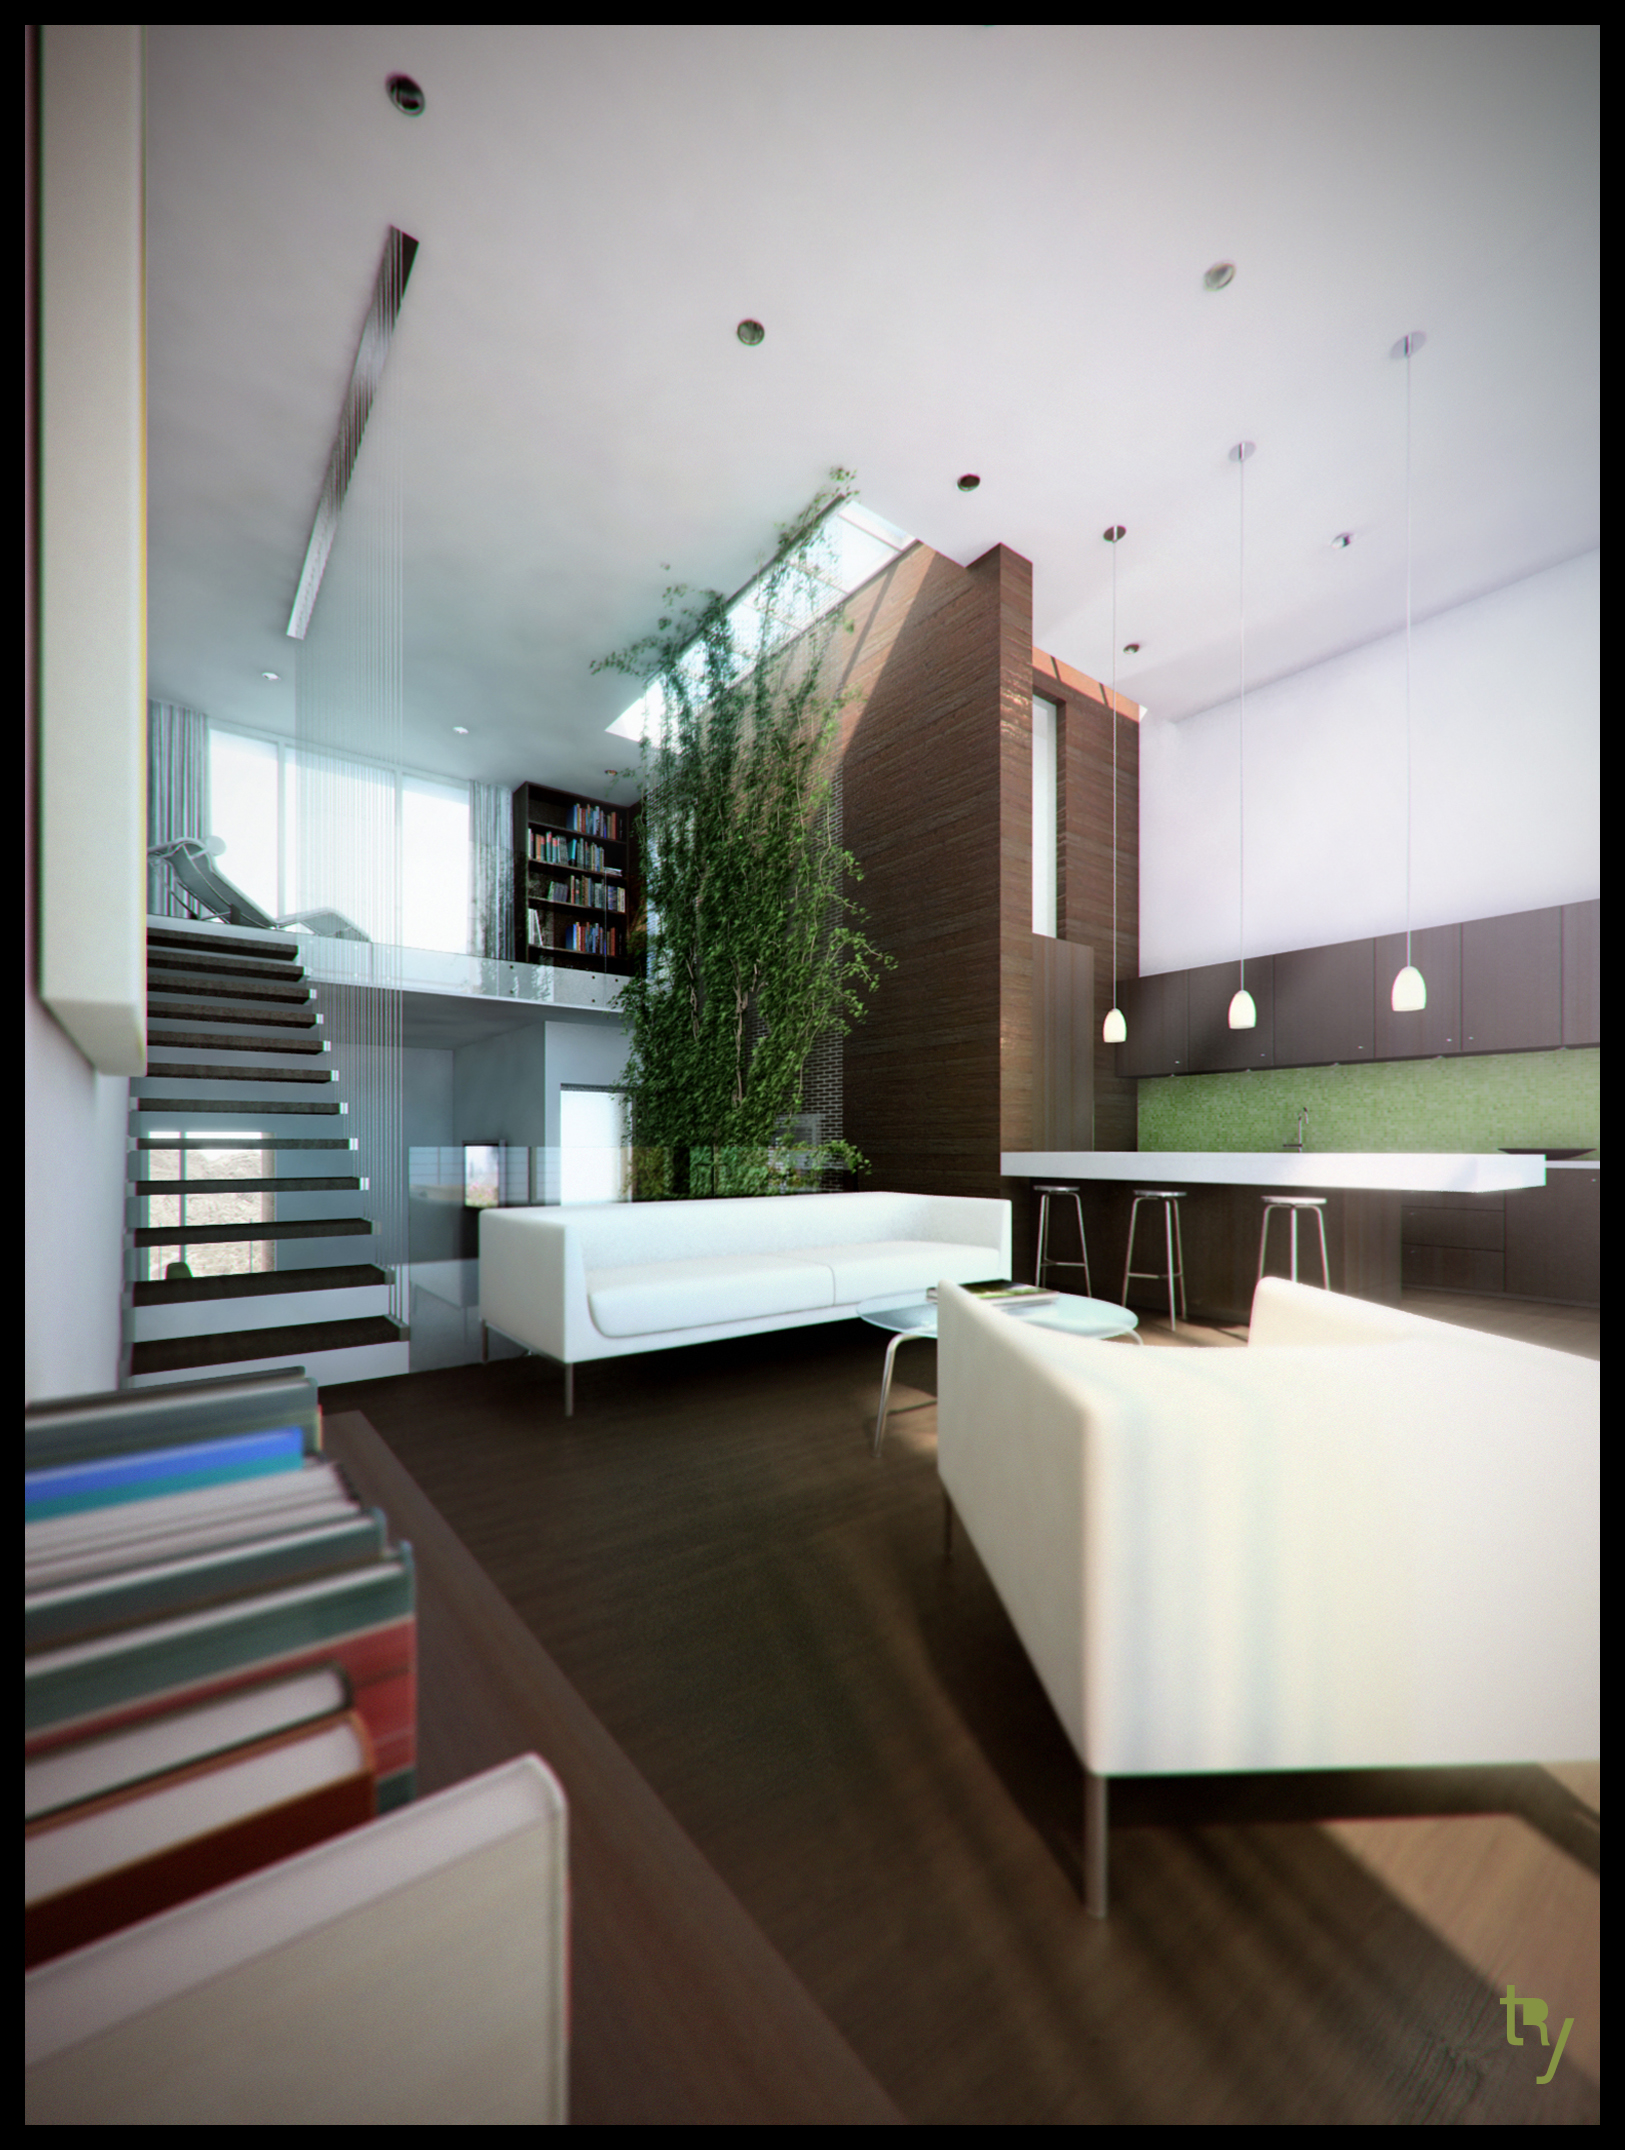 52thirty Townhomes Rendering 1